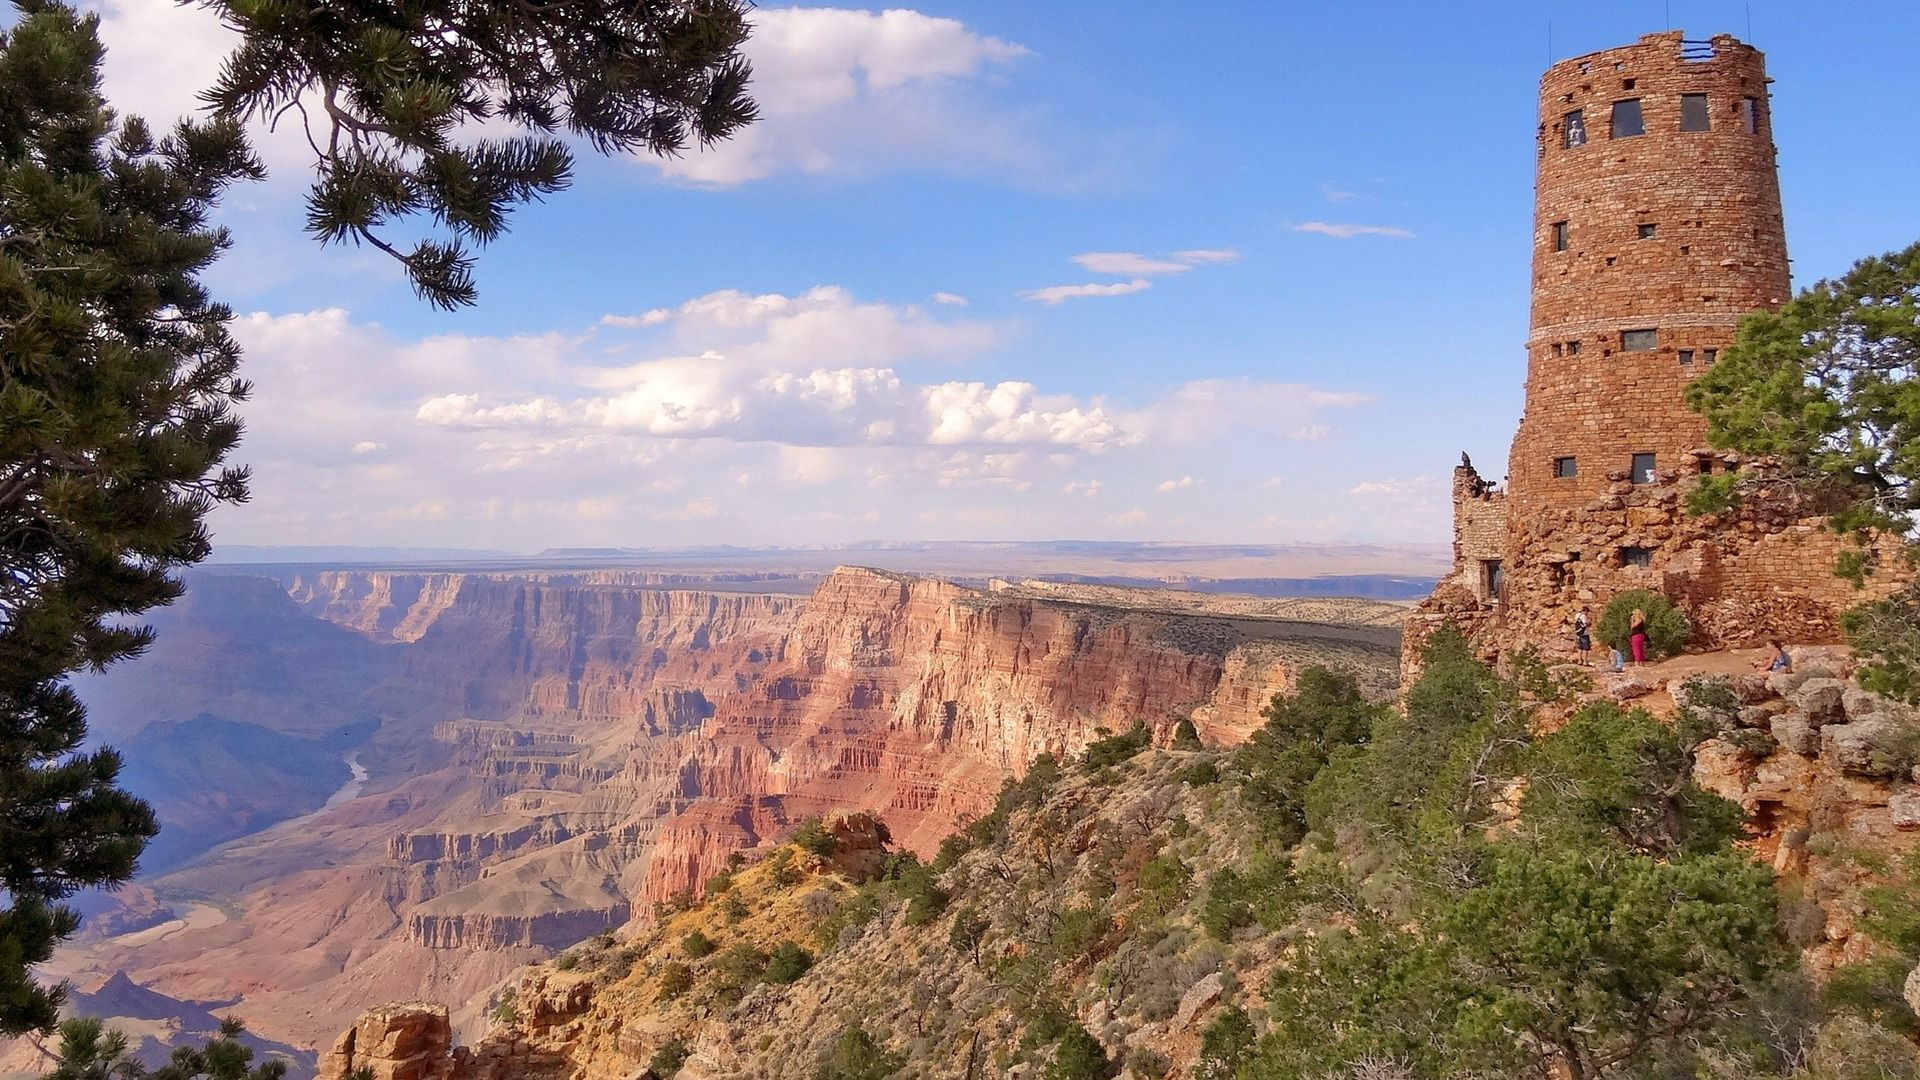 Desert View Watchtower at the Grand Canyon South Rim